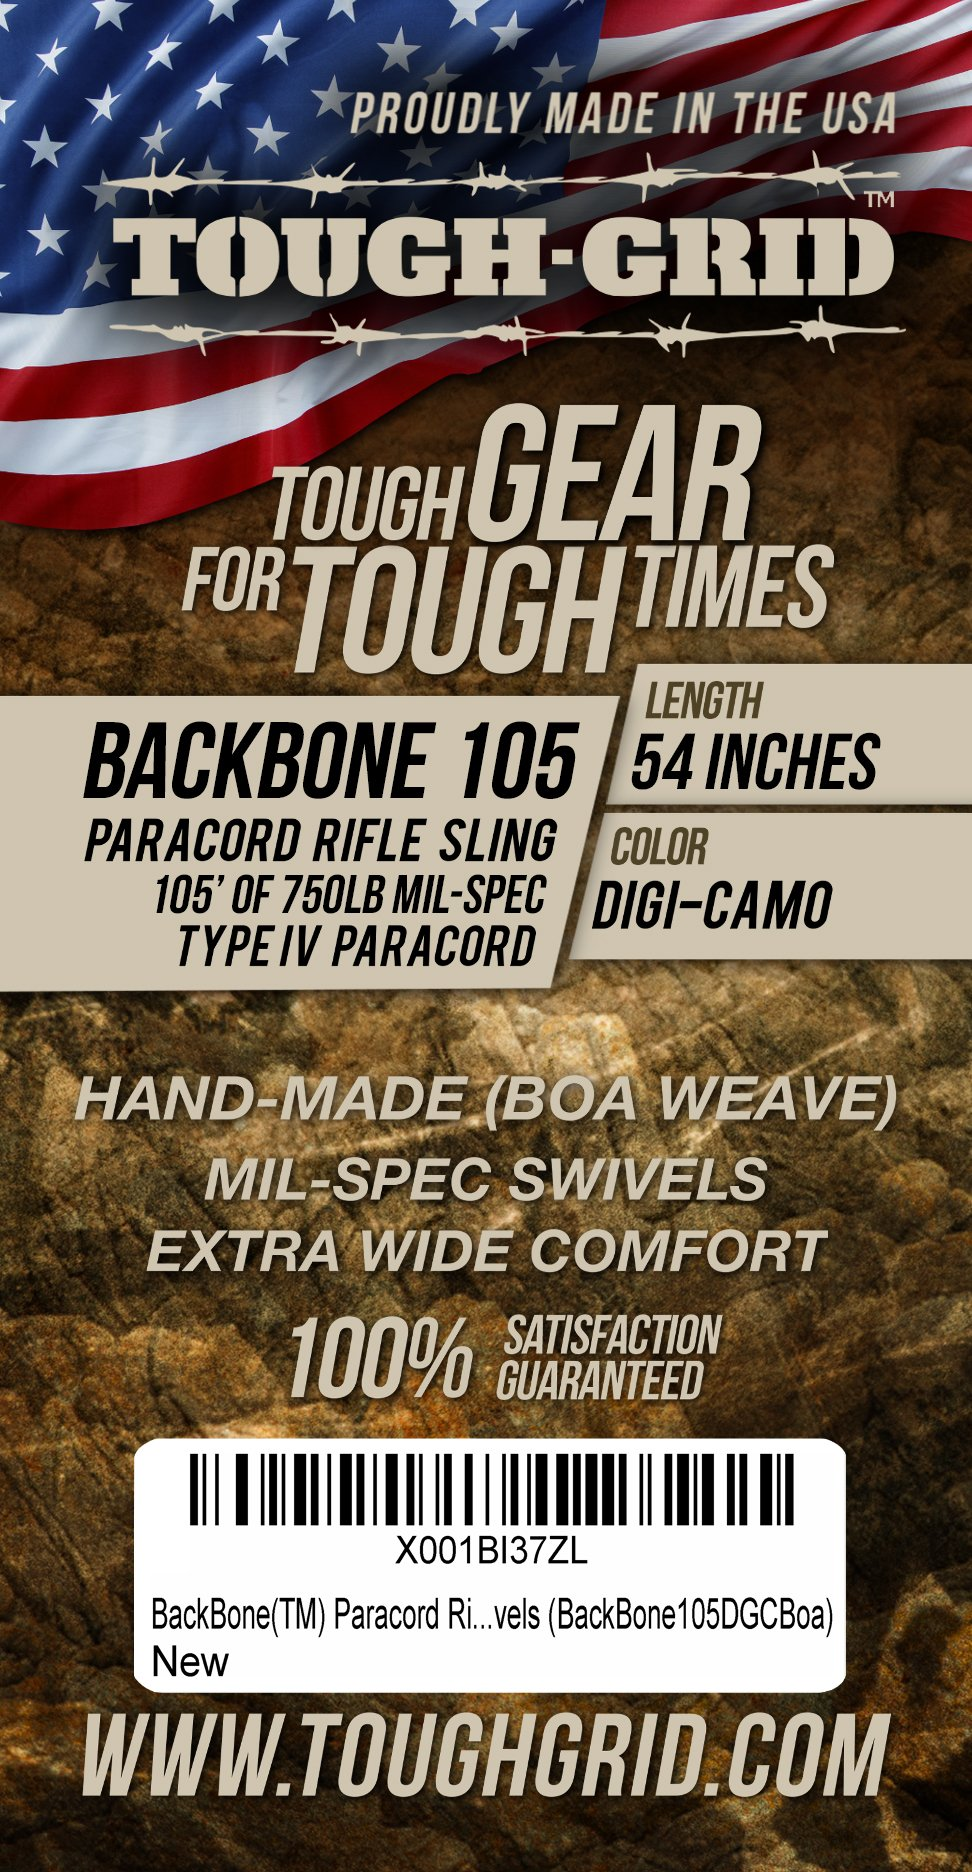 TOUGH-GRID Backbone(TM) Paracord Rifle Sling - Gun Sling/Rifle Sling - Handmade in The USA with Authentic Mil-Spec 750lb Type IV Paracord and Mil-Spec Swivels (BackBone105DGCBoa) by TOUGH-GRID (Image #4)